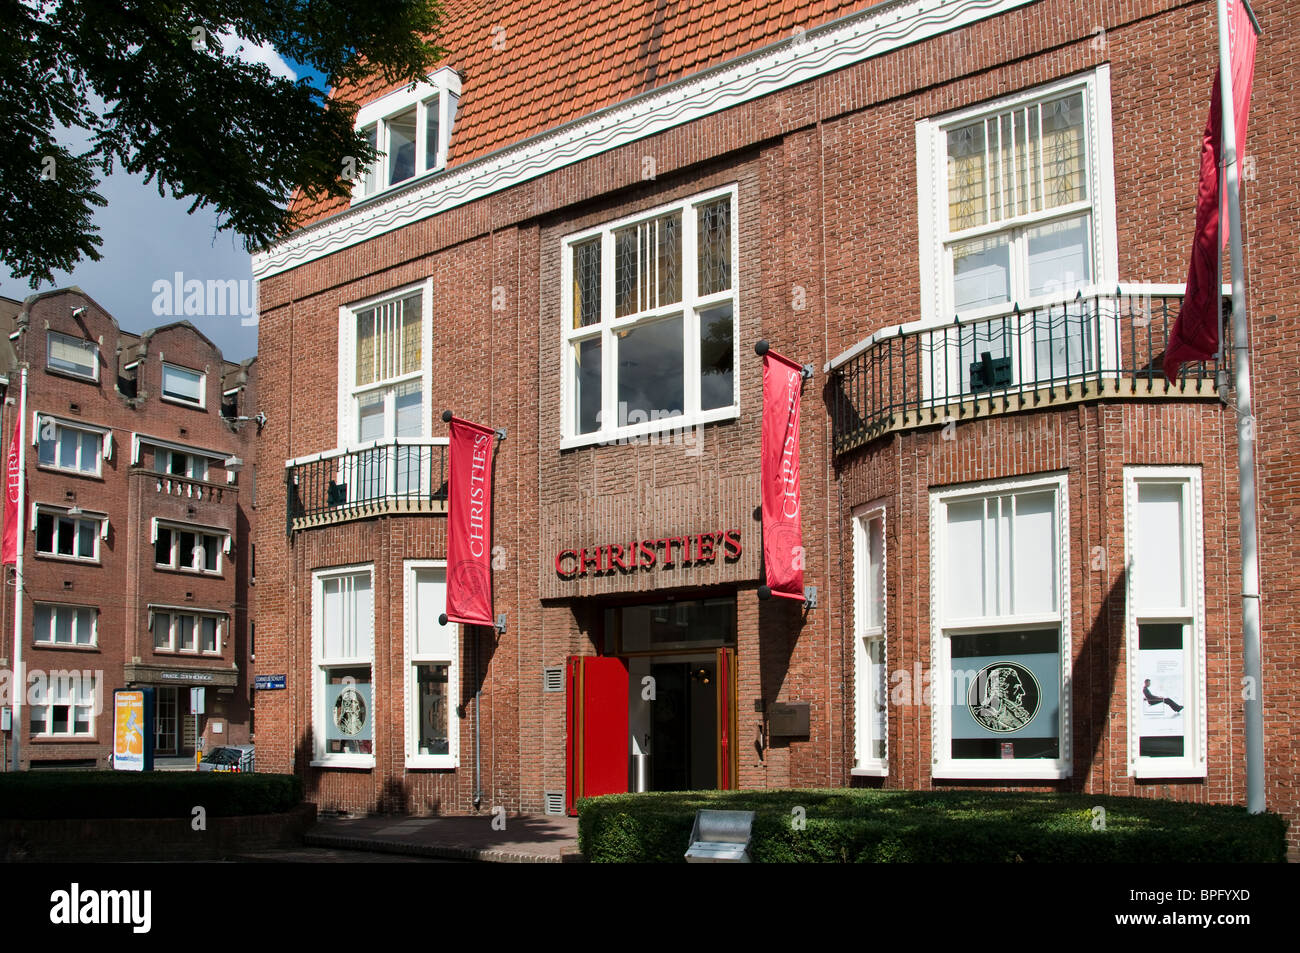 Christie's Christie s Auction House Amsterdam Netherlands - Stock Image